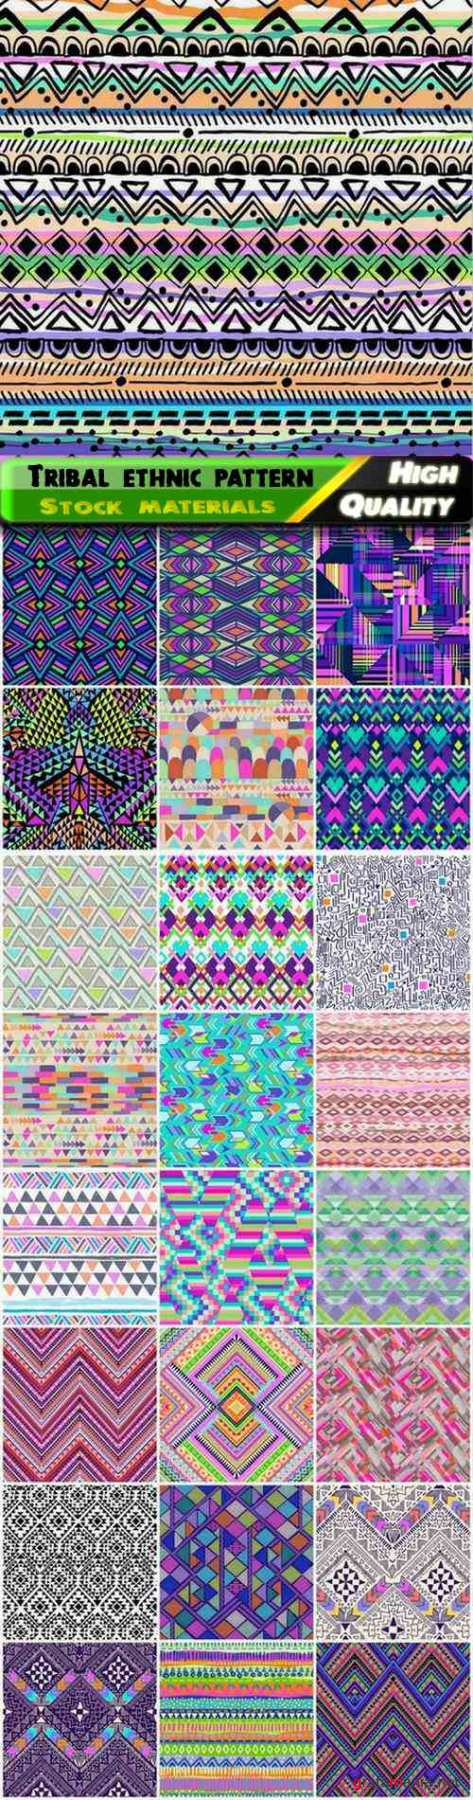 Tribal ethnic seamless Indian pattern and boho style ornament - 25 Eps